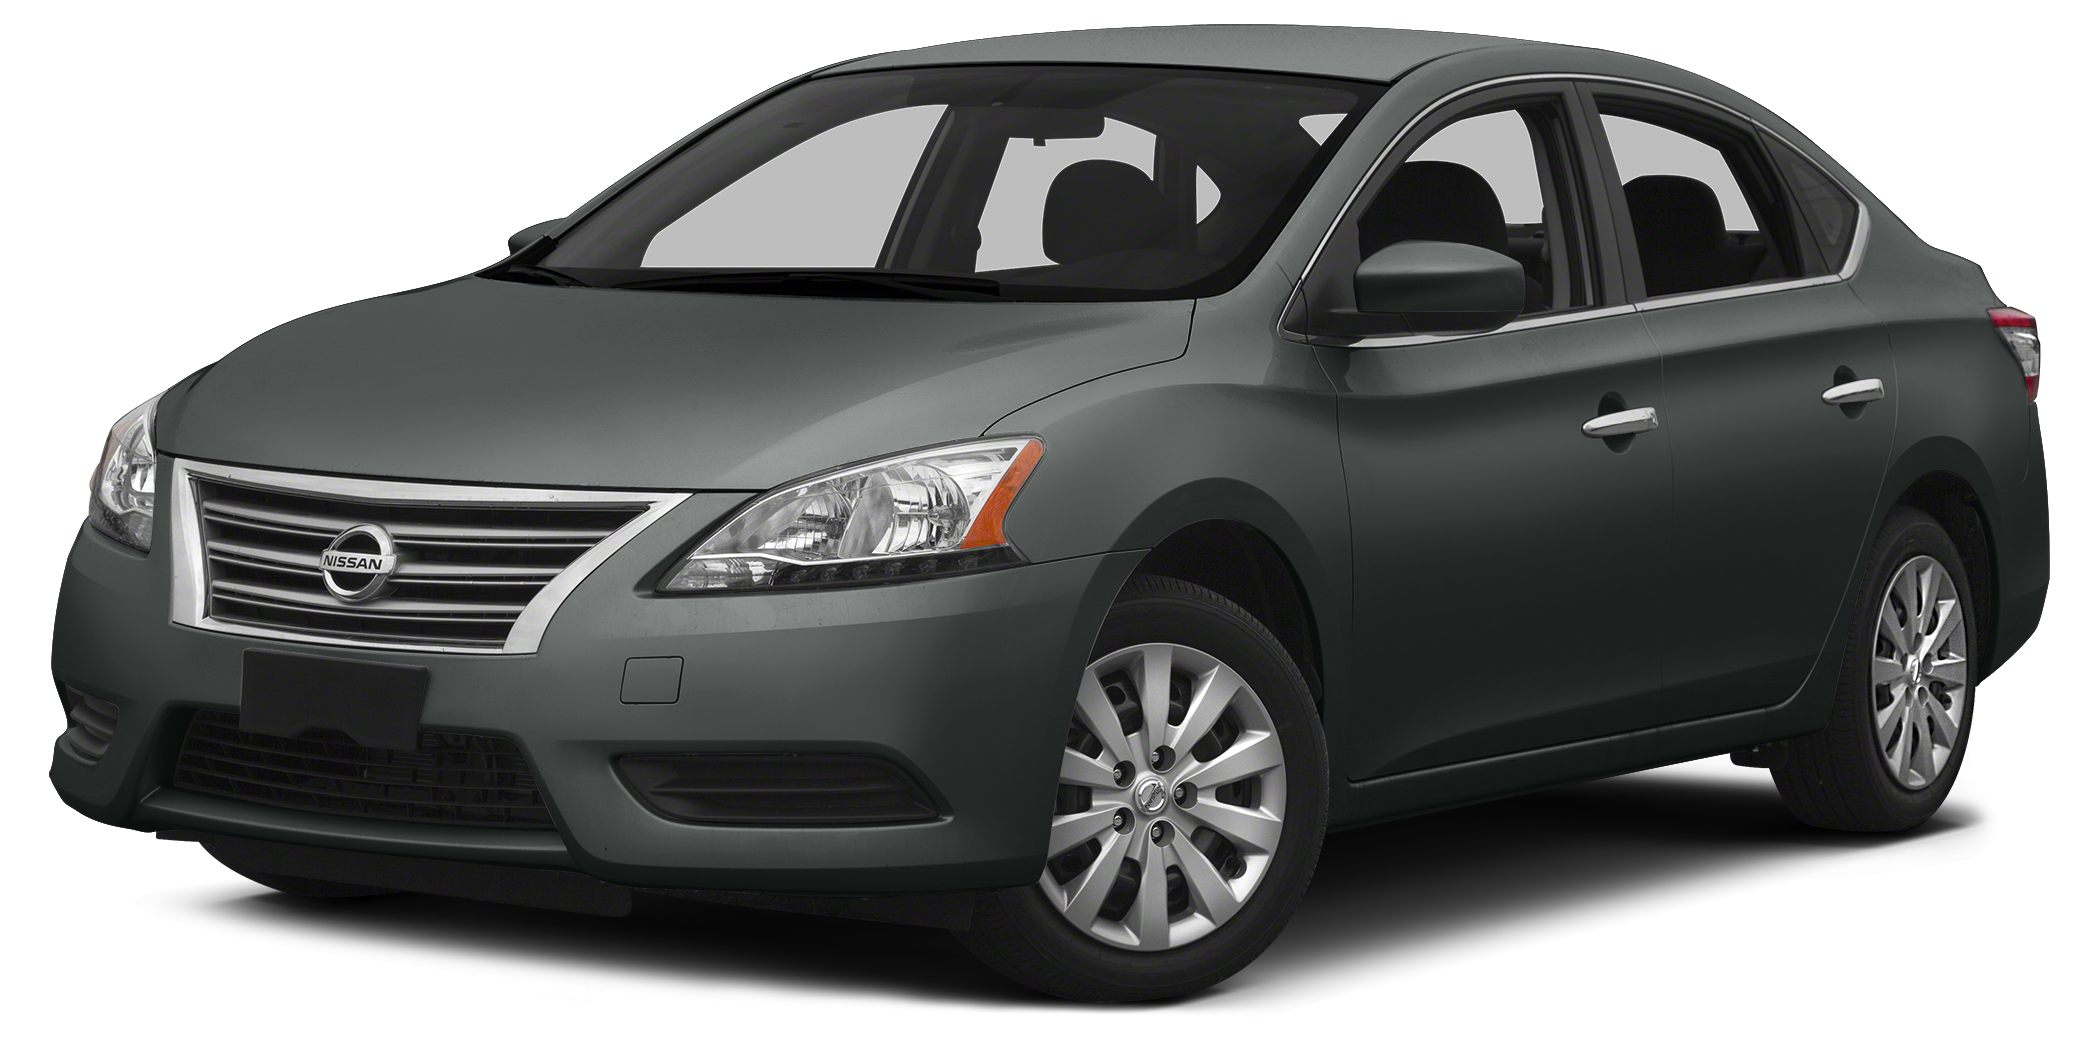 2015 Nissan Sentra S This low mileage 2015 Nissan Sentra S will not last long Low mileage Balan